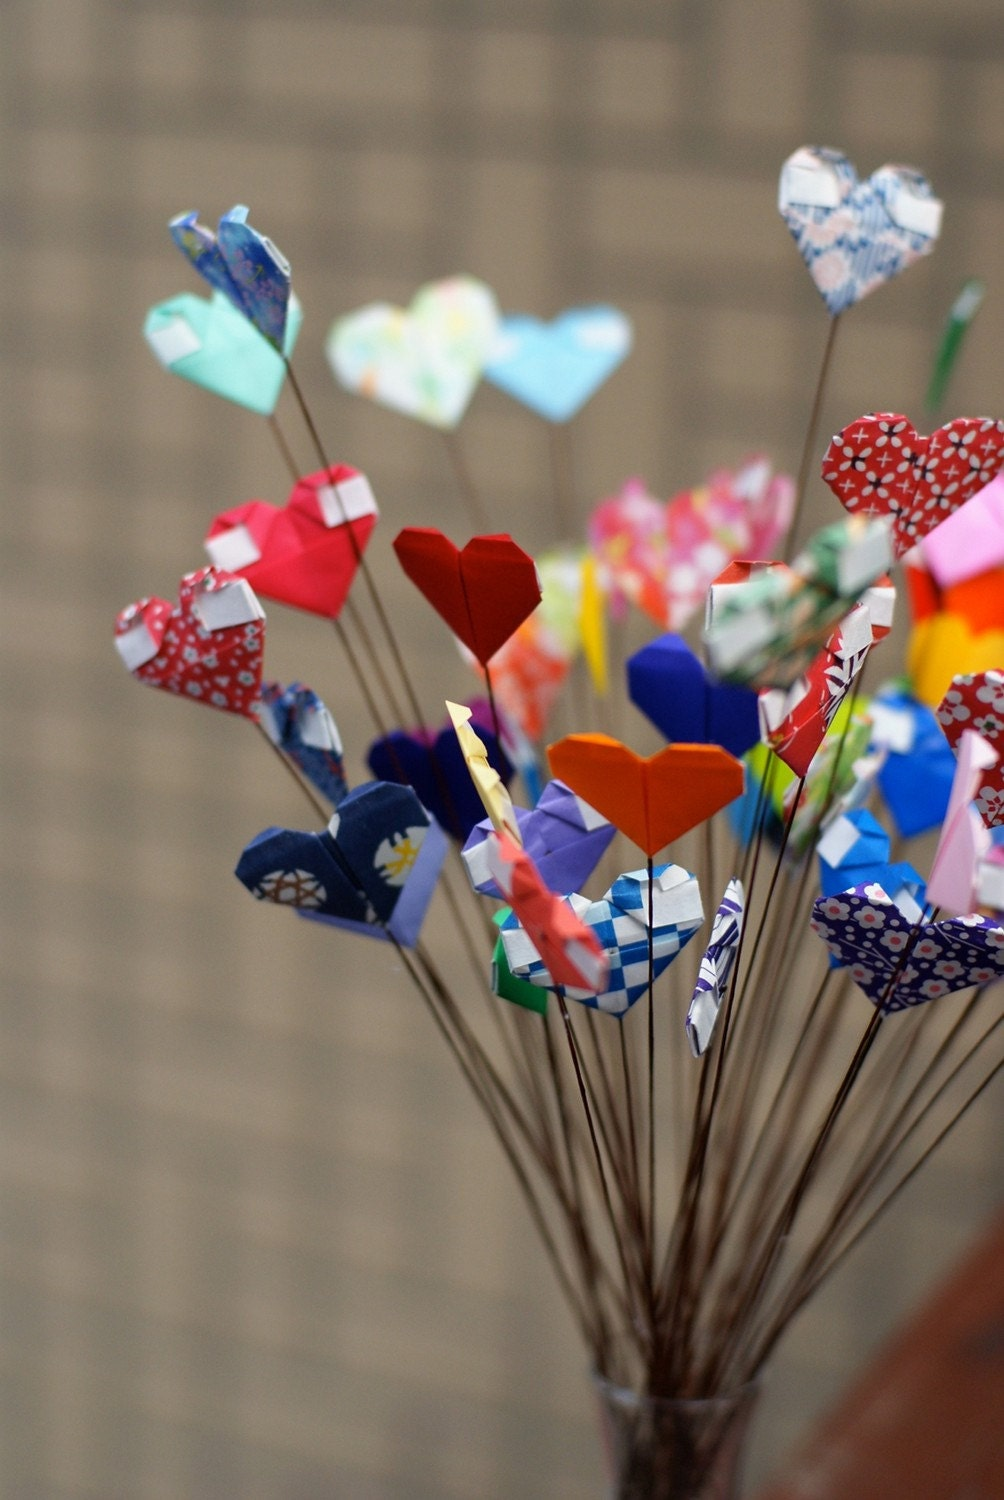 I Heart You - Origami Hearts Bouquet